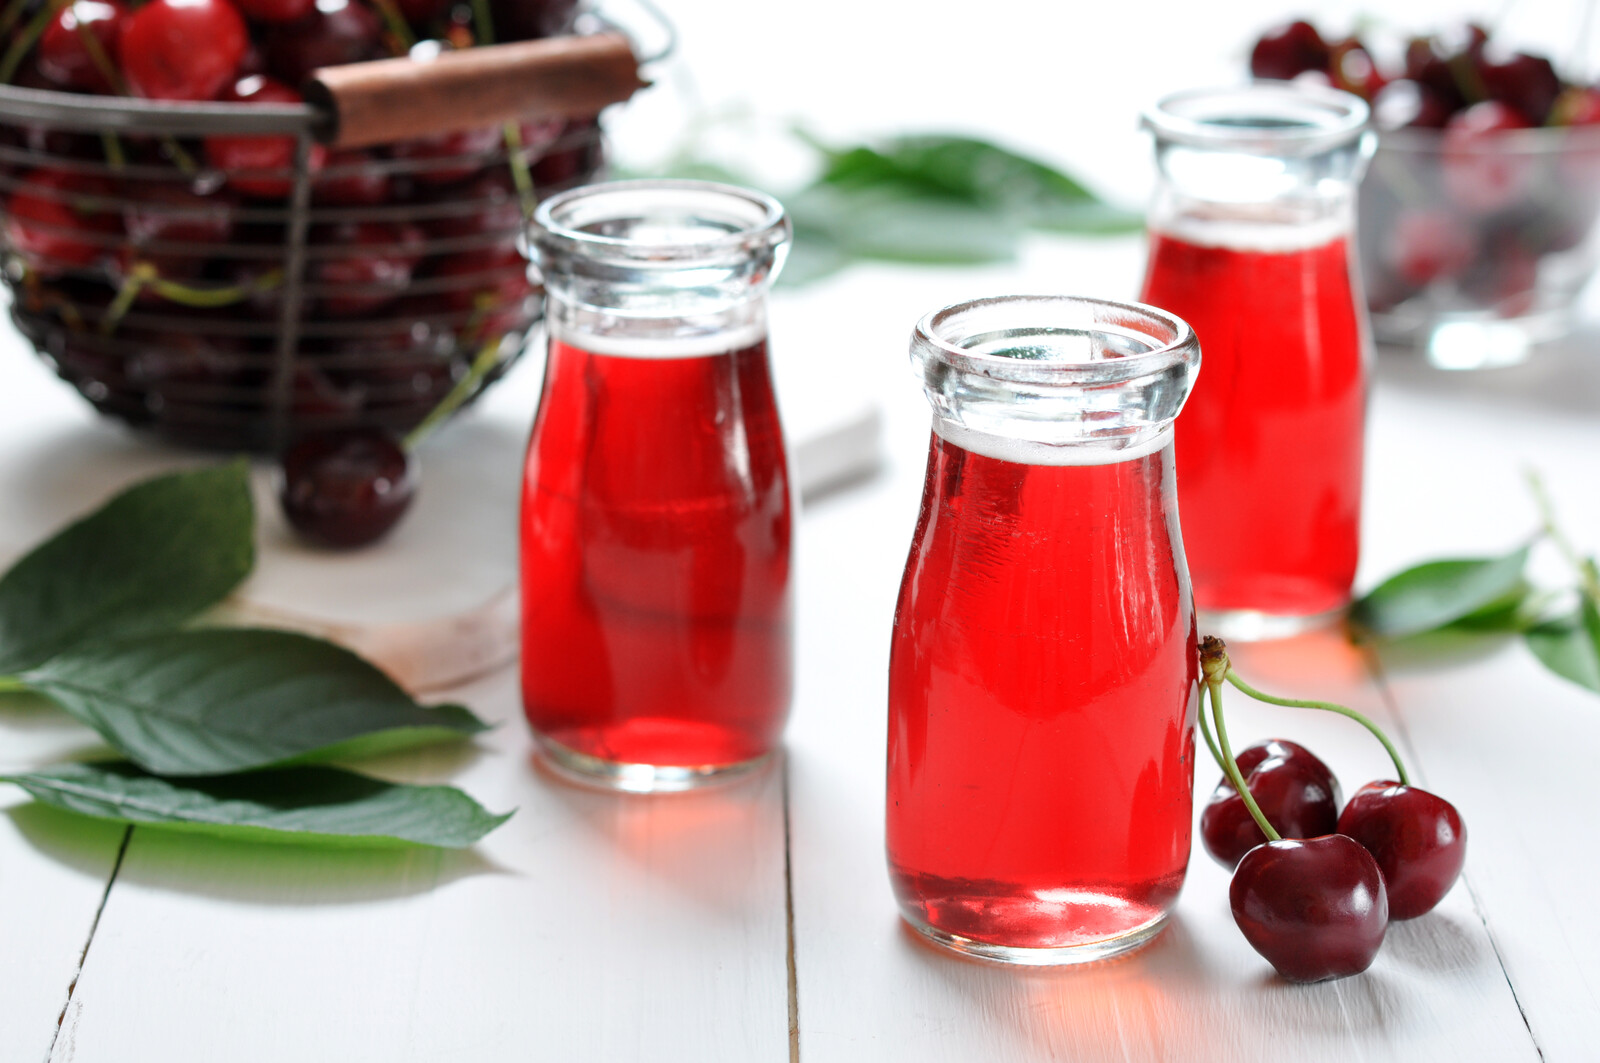 Cherry juice in juice jars and fresh ripe cherries in baskets on wooden white table in the background